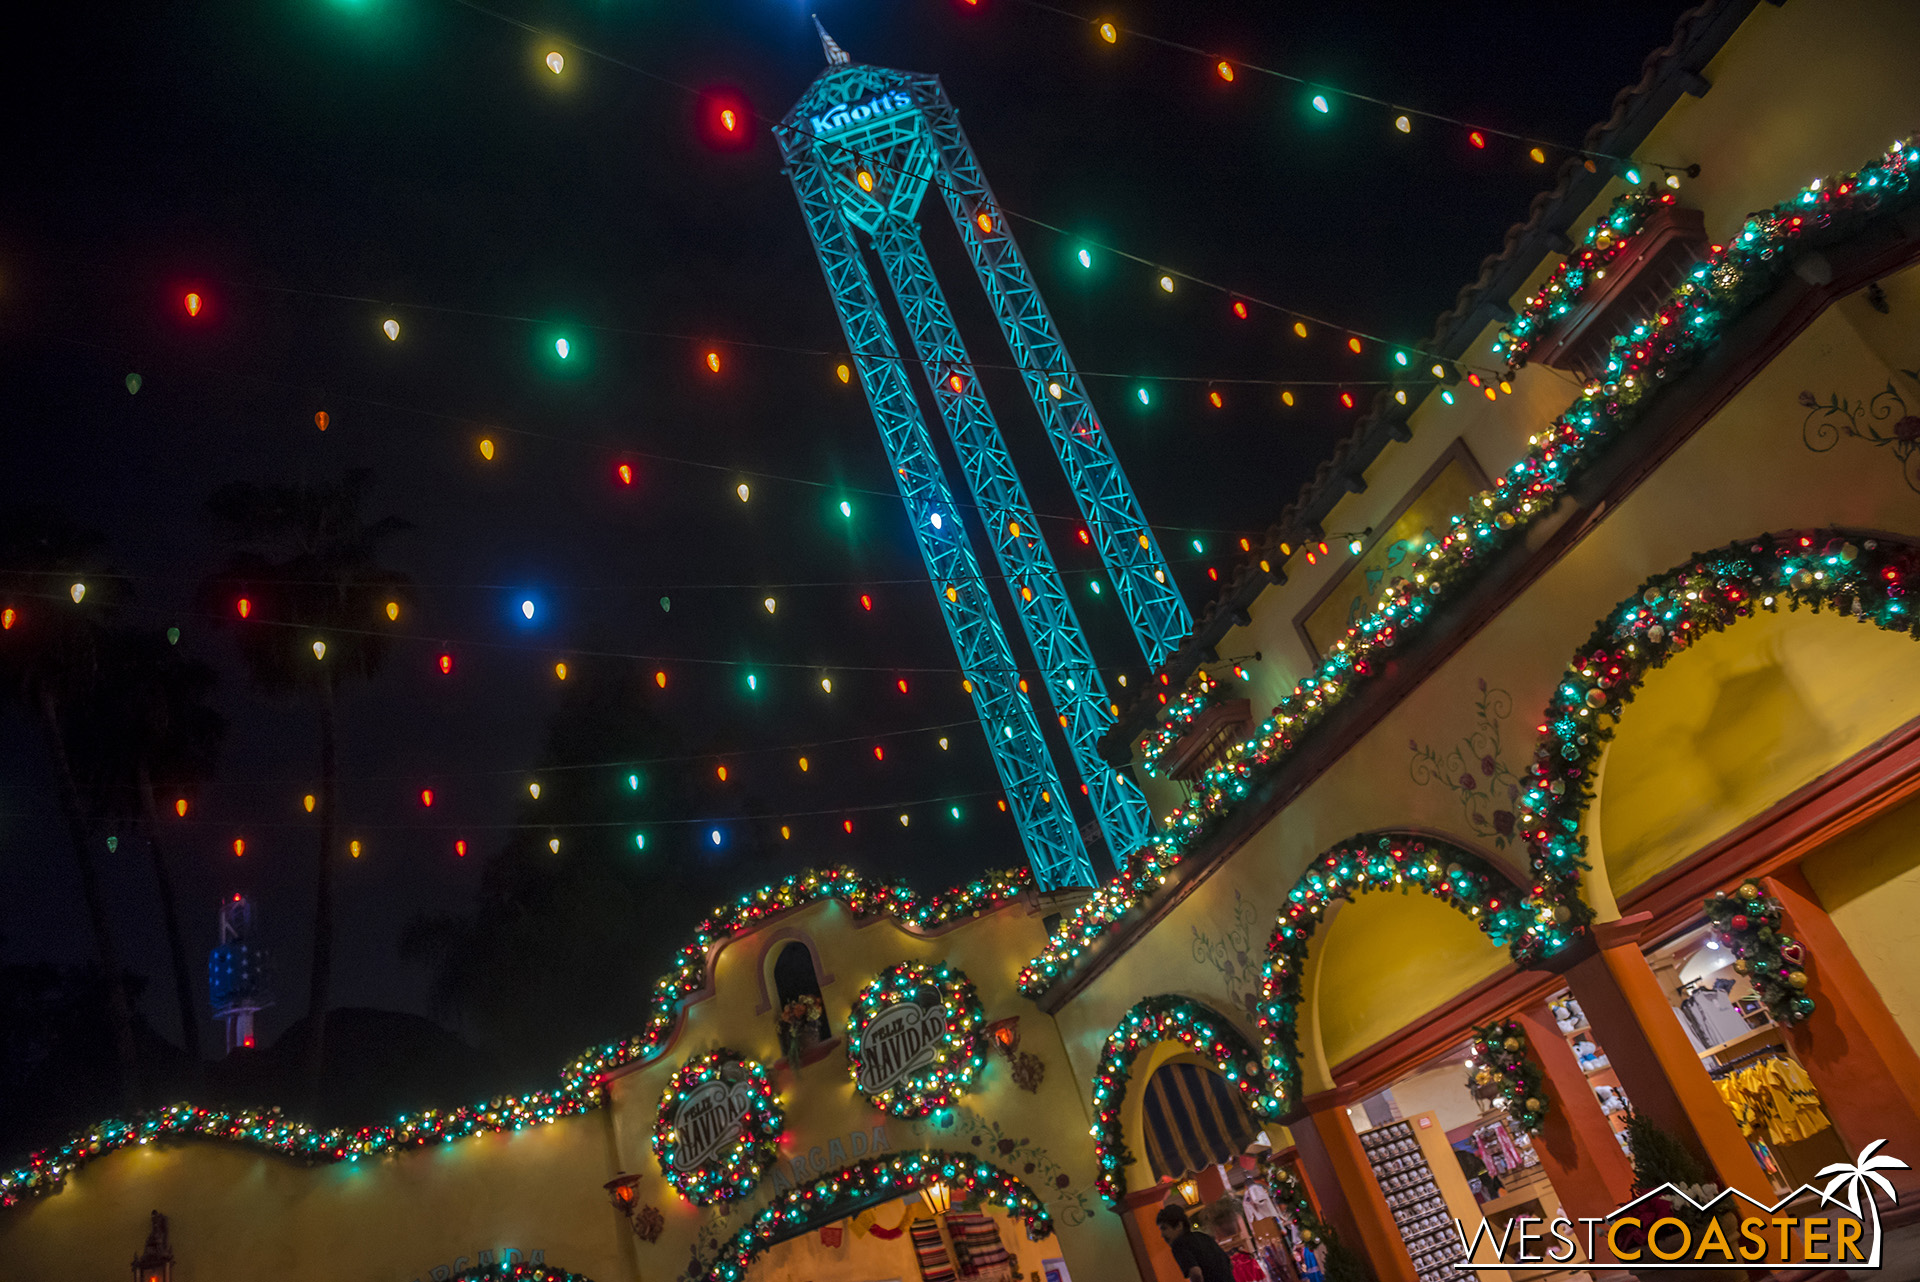 Pretty string lights and lit-up garland accent the buildings over by the Fiesta fountain and arcade.